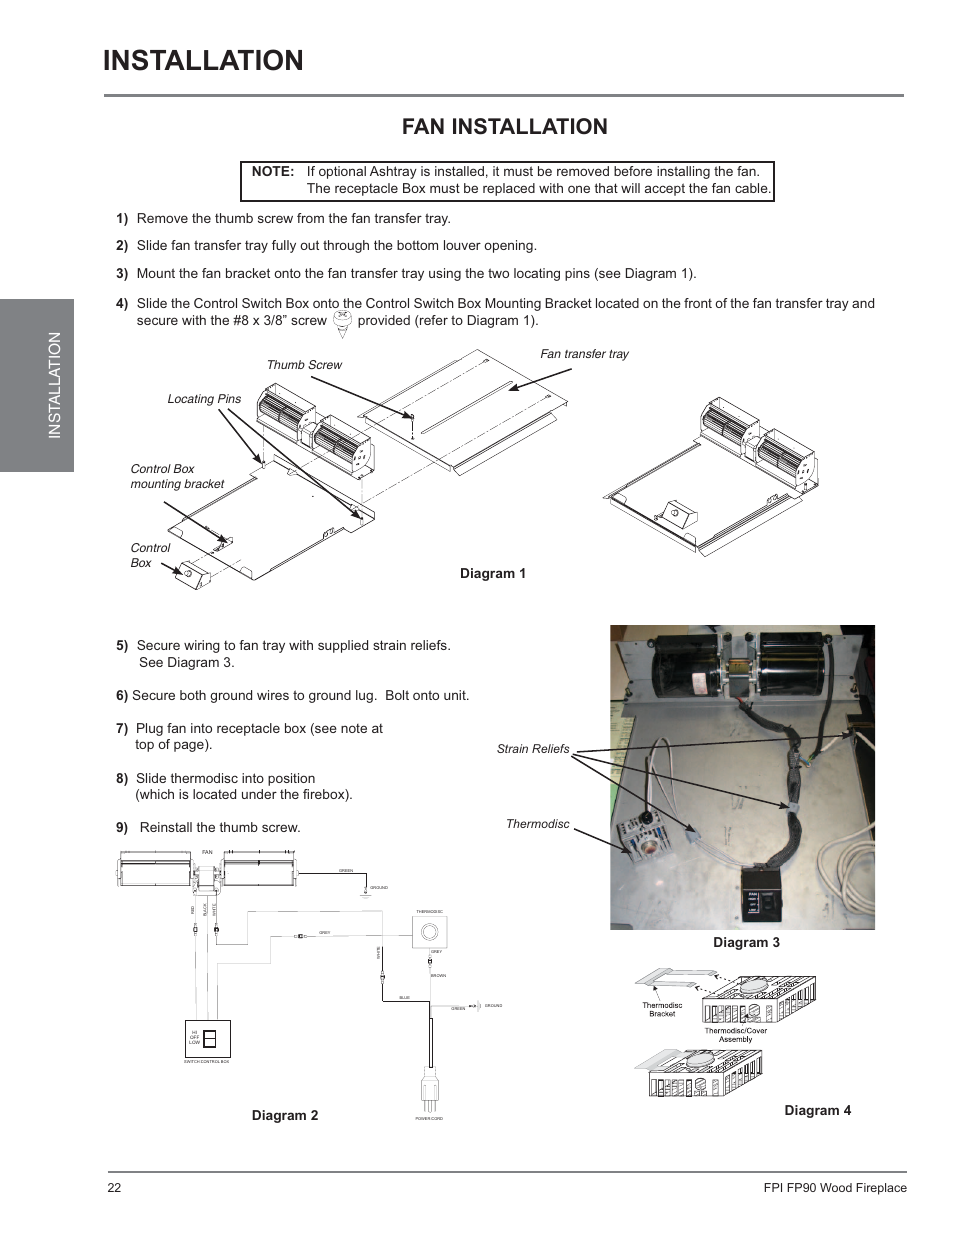 Installation, Fp90, Fan installation | Regency Excalibur EX90 Large Wood  Fireplace (US Edition) User Manual | Page 22 / 36